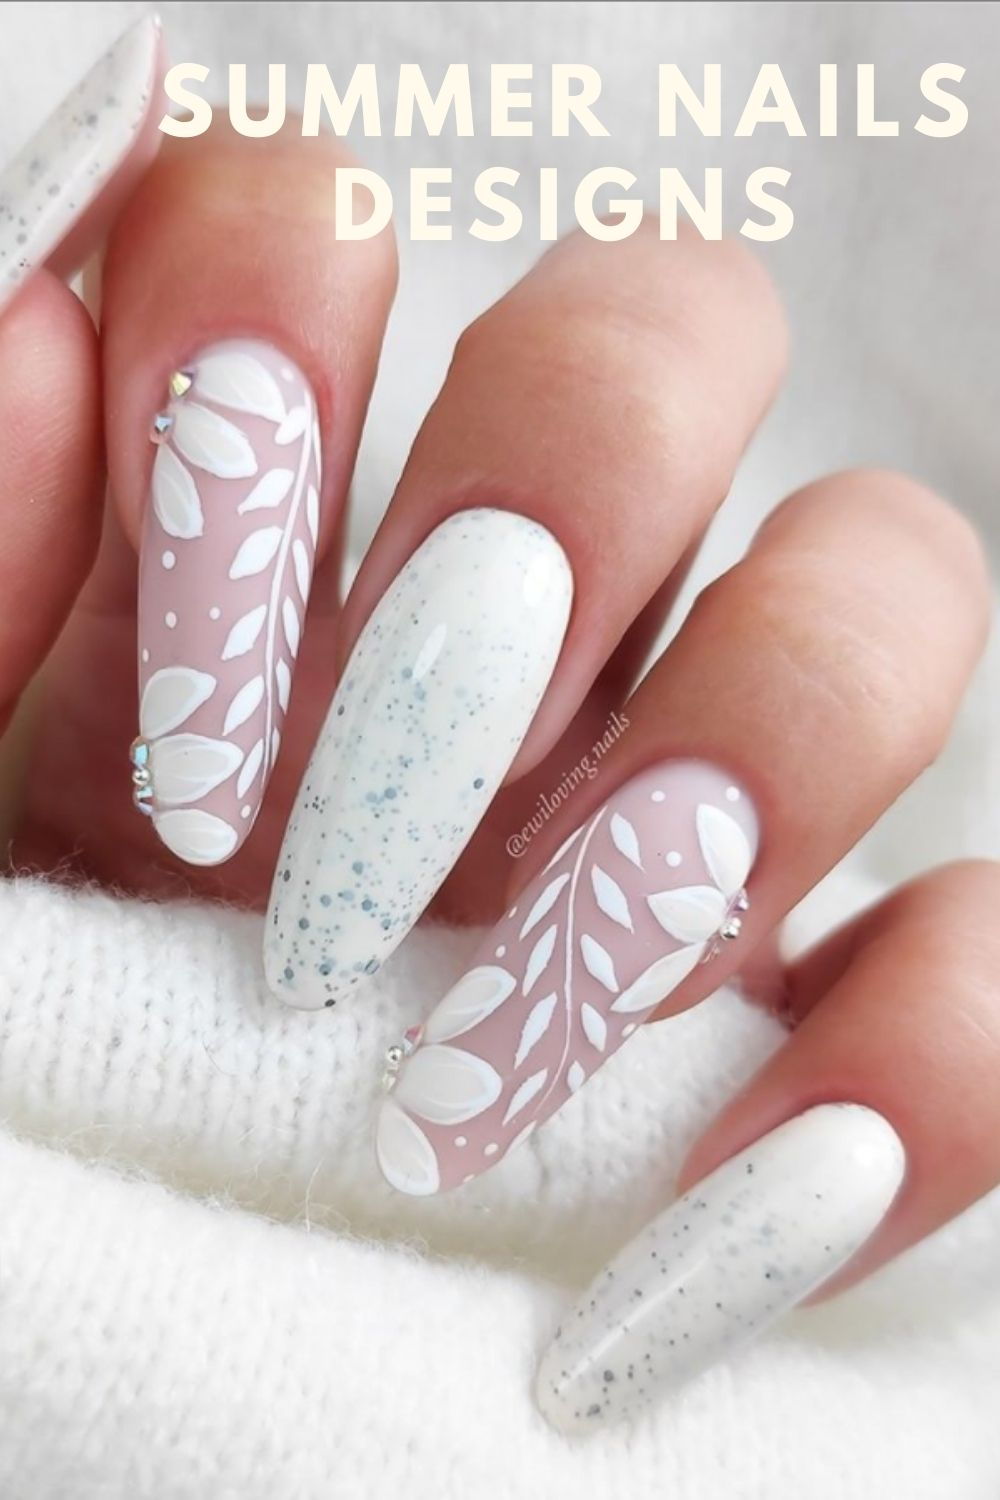 White almond nails with flowers